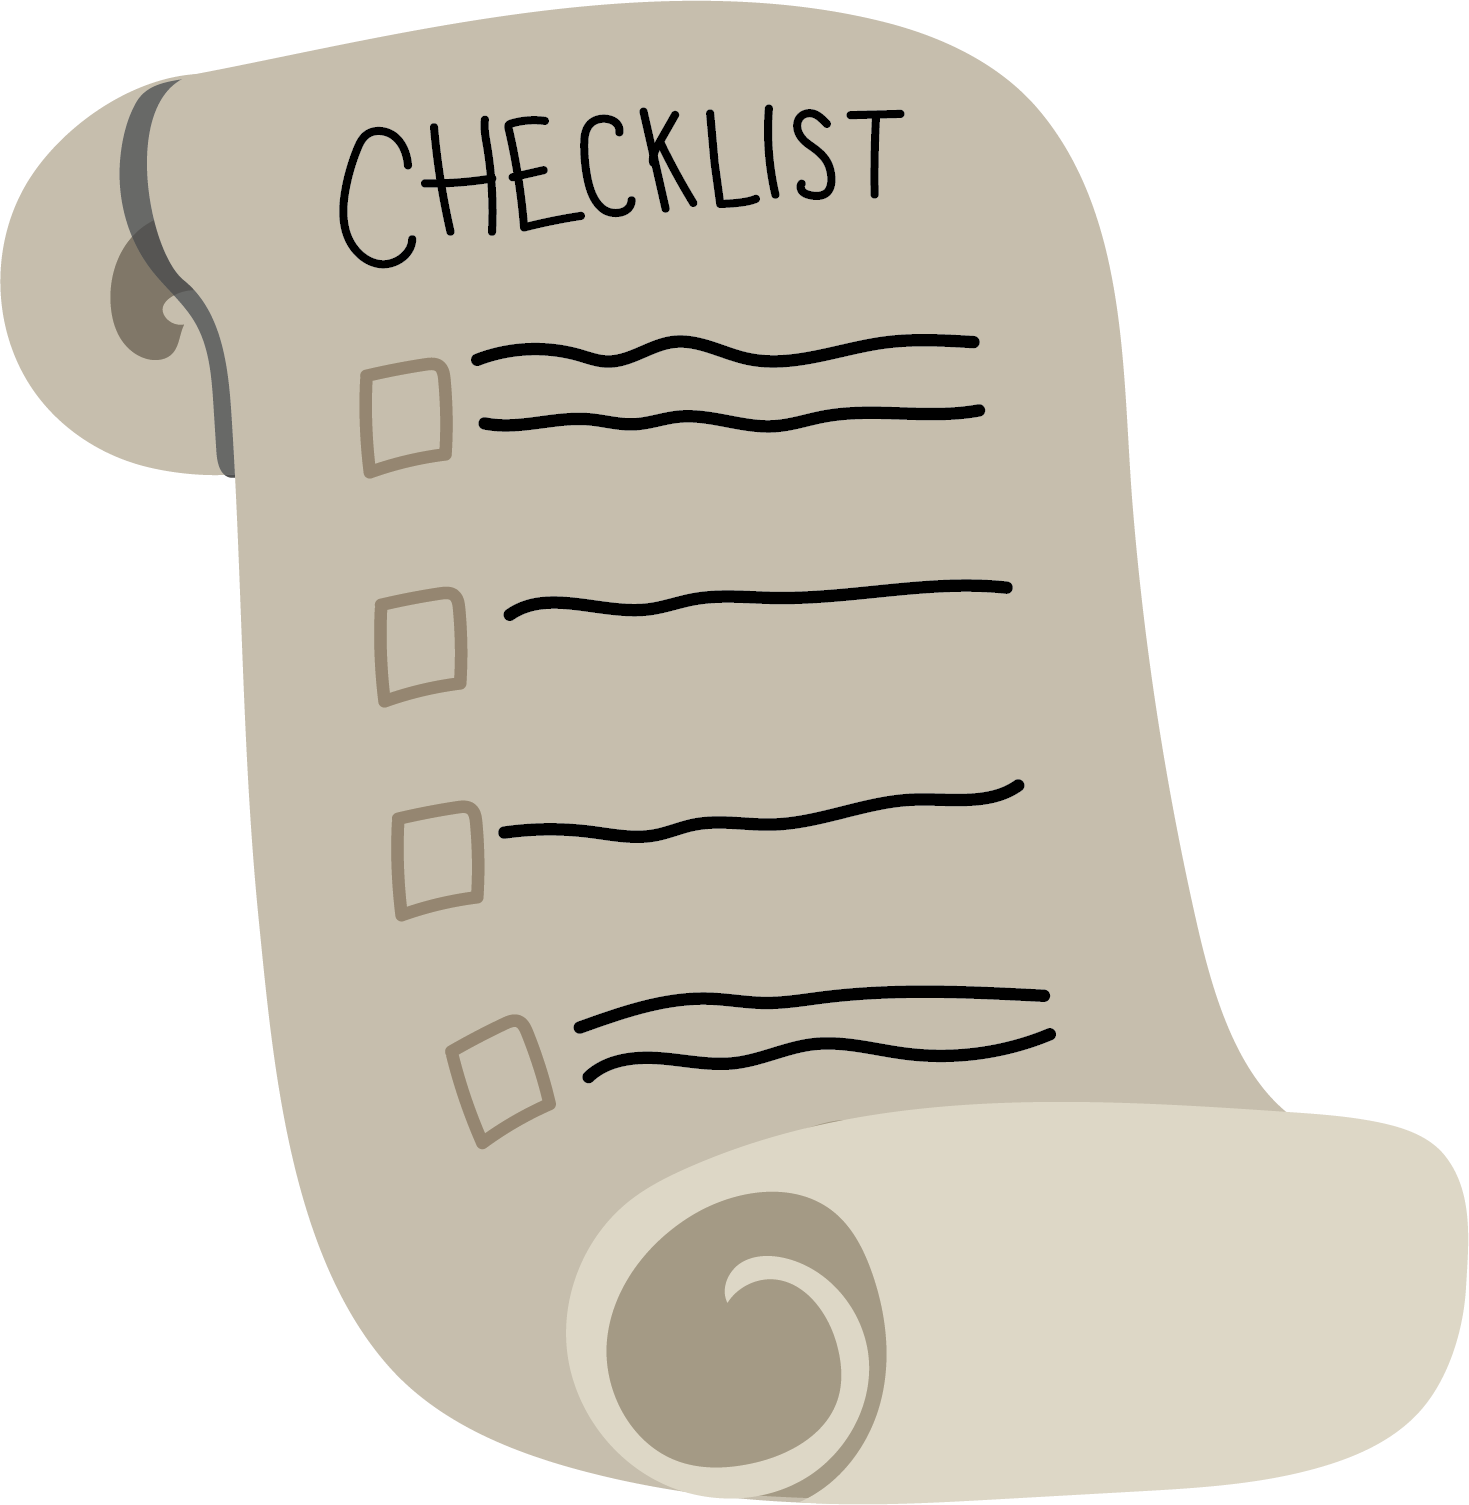 public transit cleaning checklist